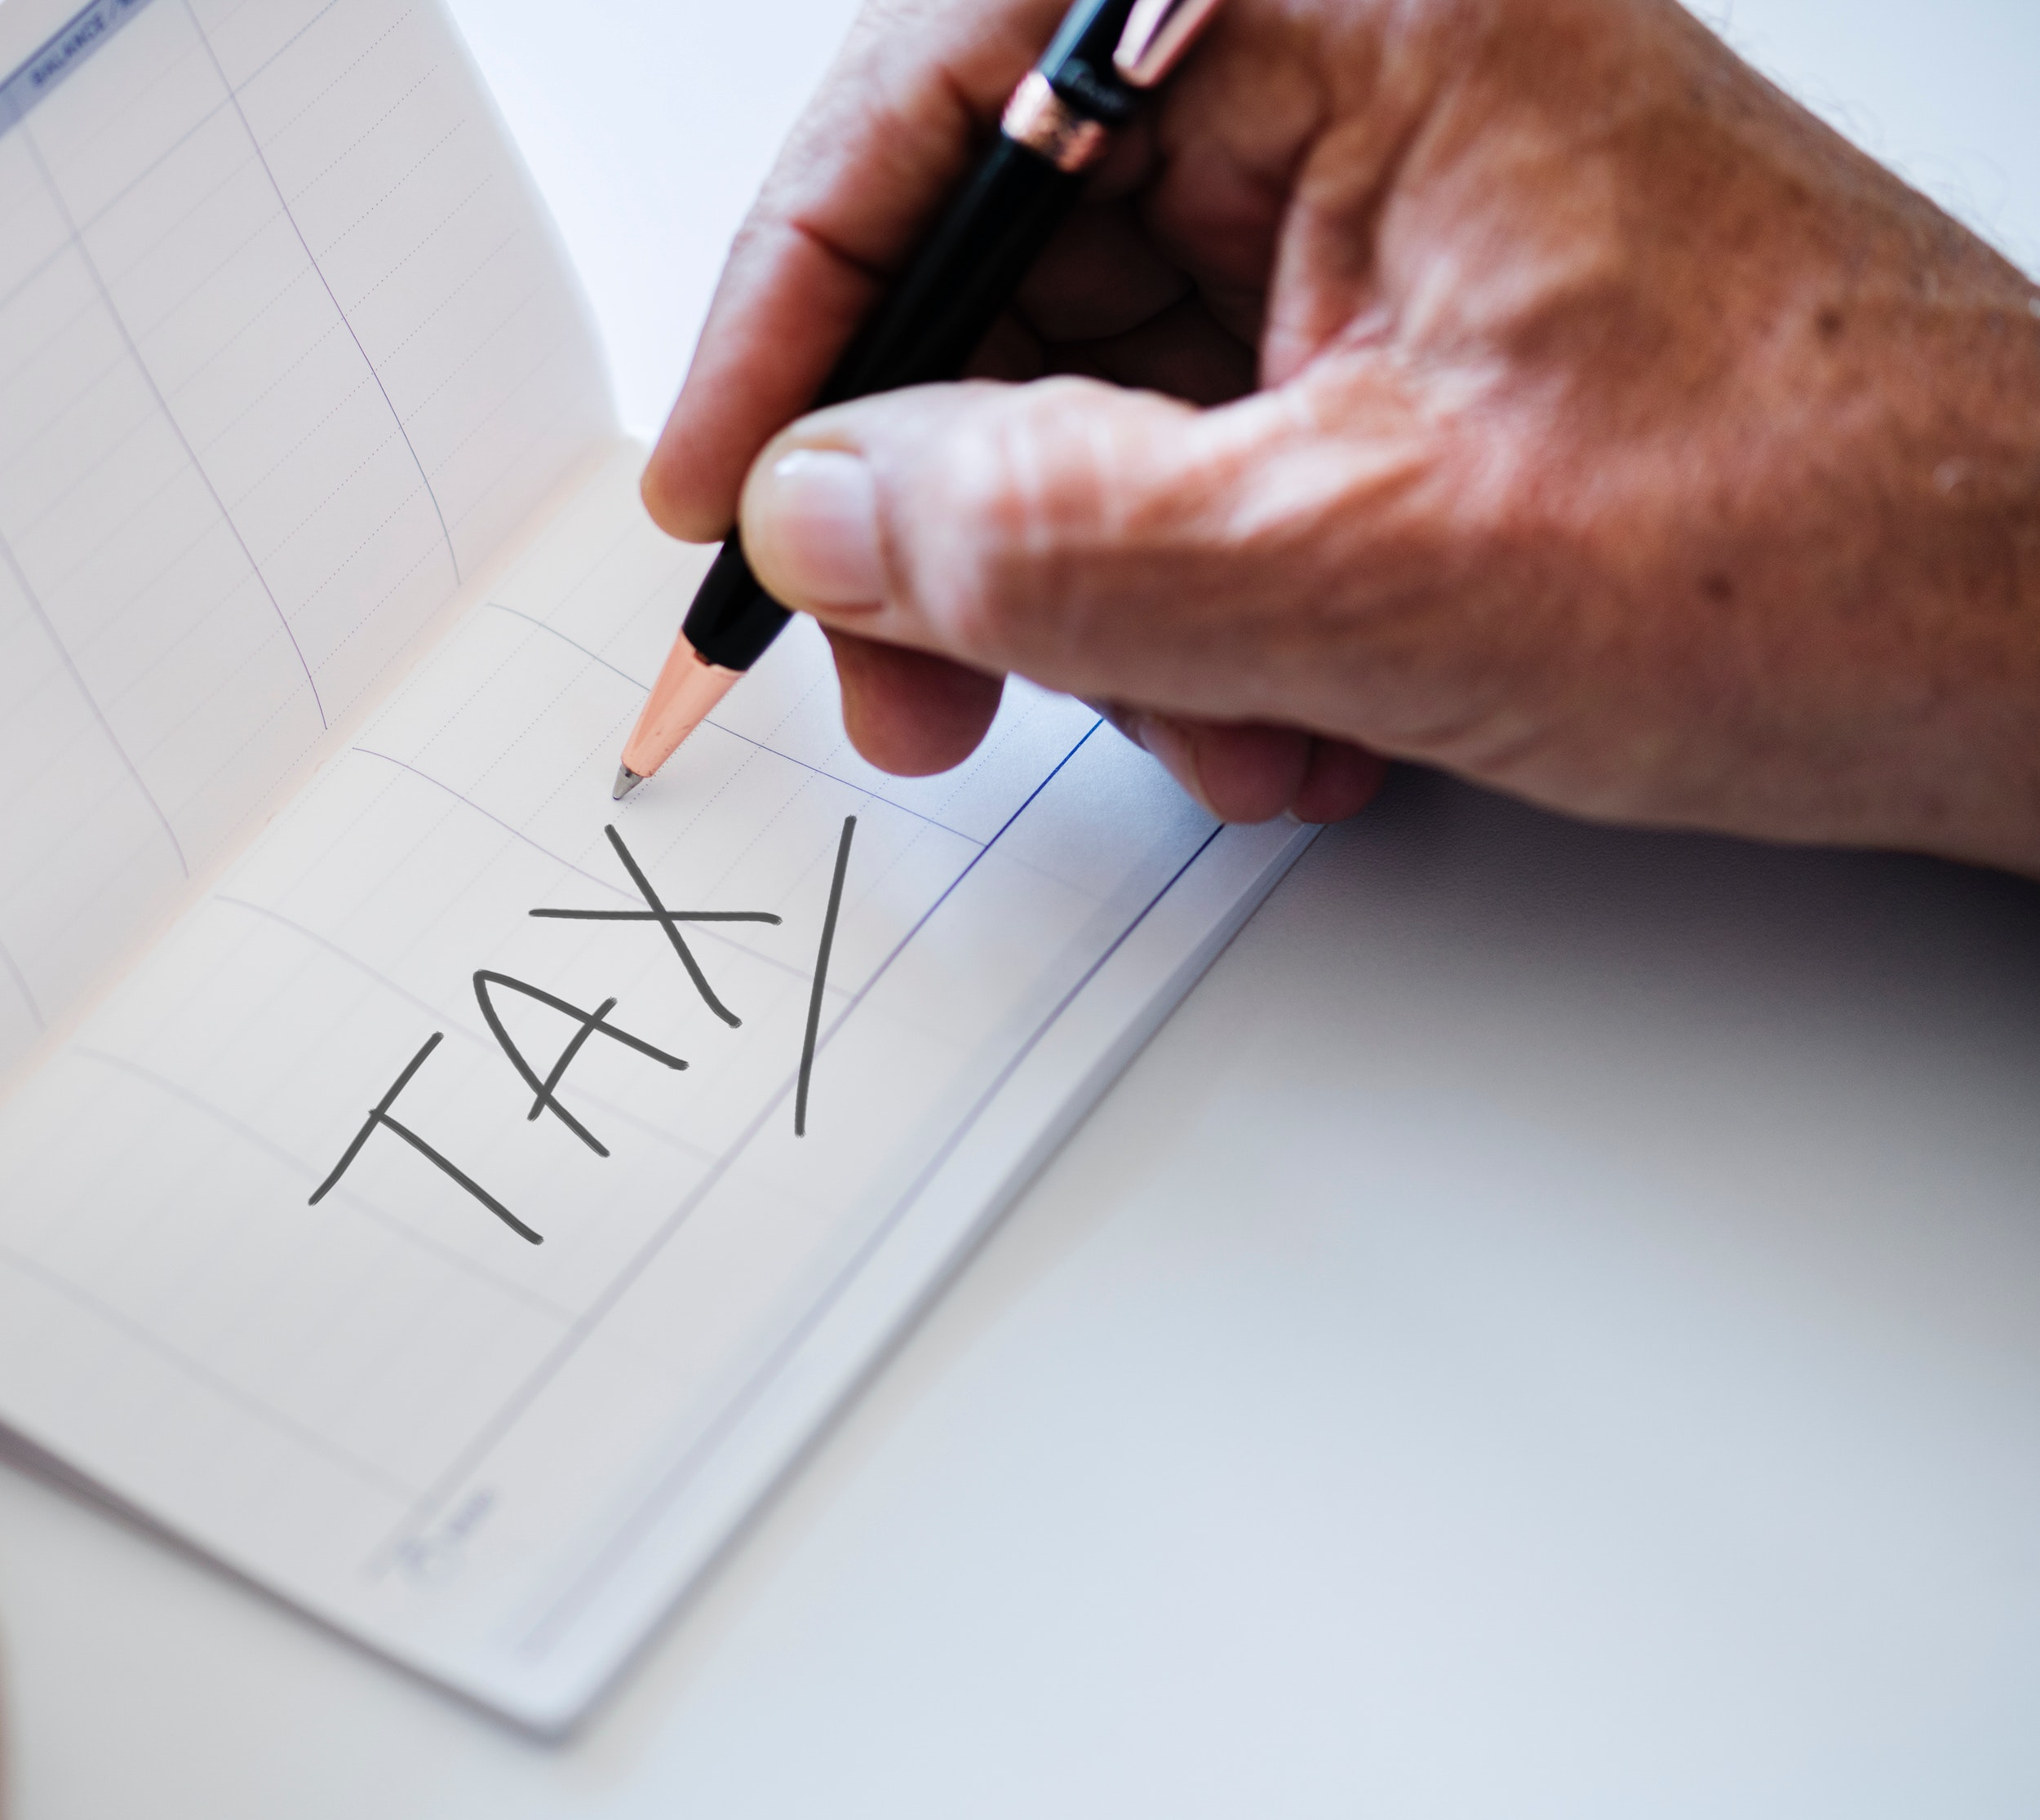 TAX Solutions - We can help you navigate the complexities of an ever-changing tax code. Whether business, personal, trusts, estates, or gifts, we can help you through the tax filing process (tax planning, compliance, deadlines, IRS notices). We are here for you every step of the way to help take the burden out of tax compliance.